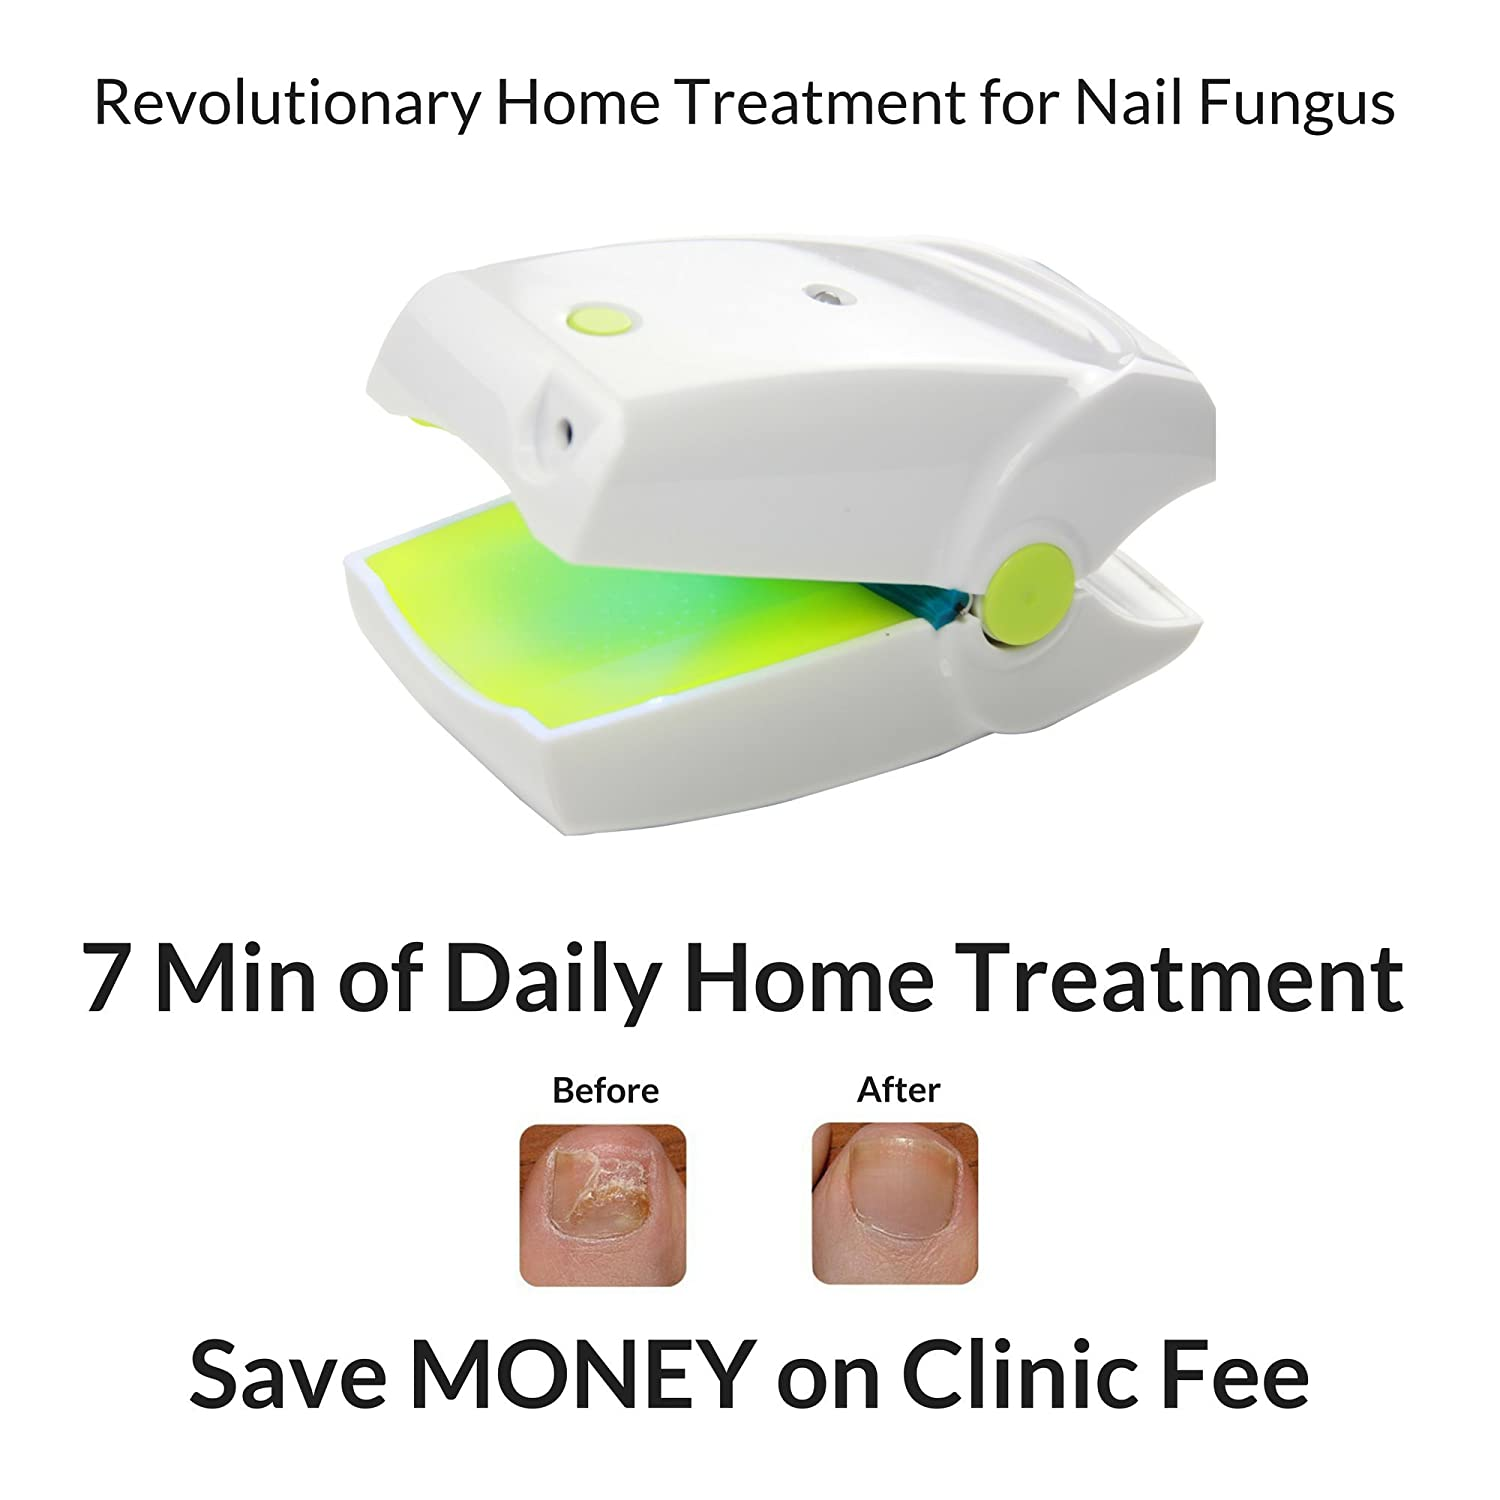 Highly Effective Rechargeable Nail Fungus Laser Treatment Device for Onychomycosis Cure. This Instrument is for Home use and Takes Care of Nail Fungus and infections. Easy to use and Fast Results. Cherrish